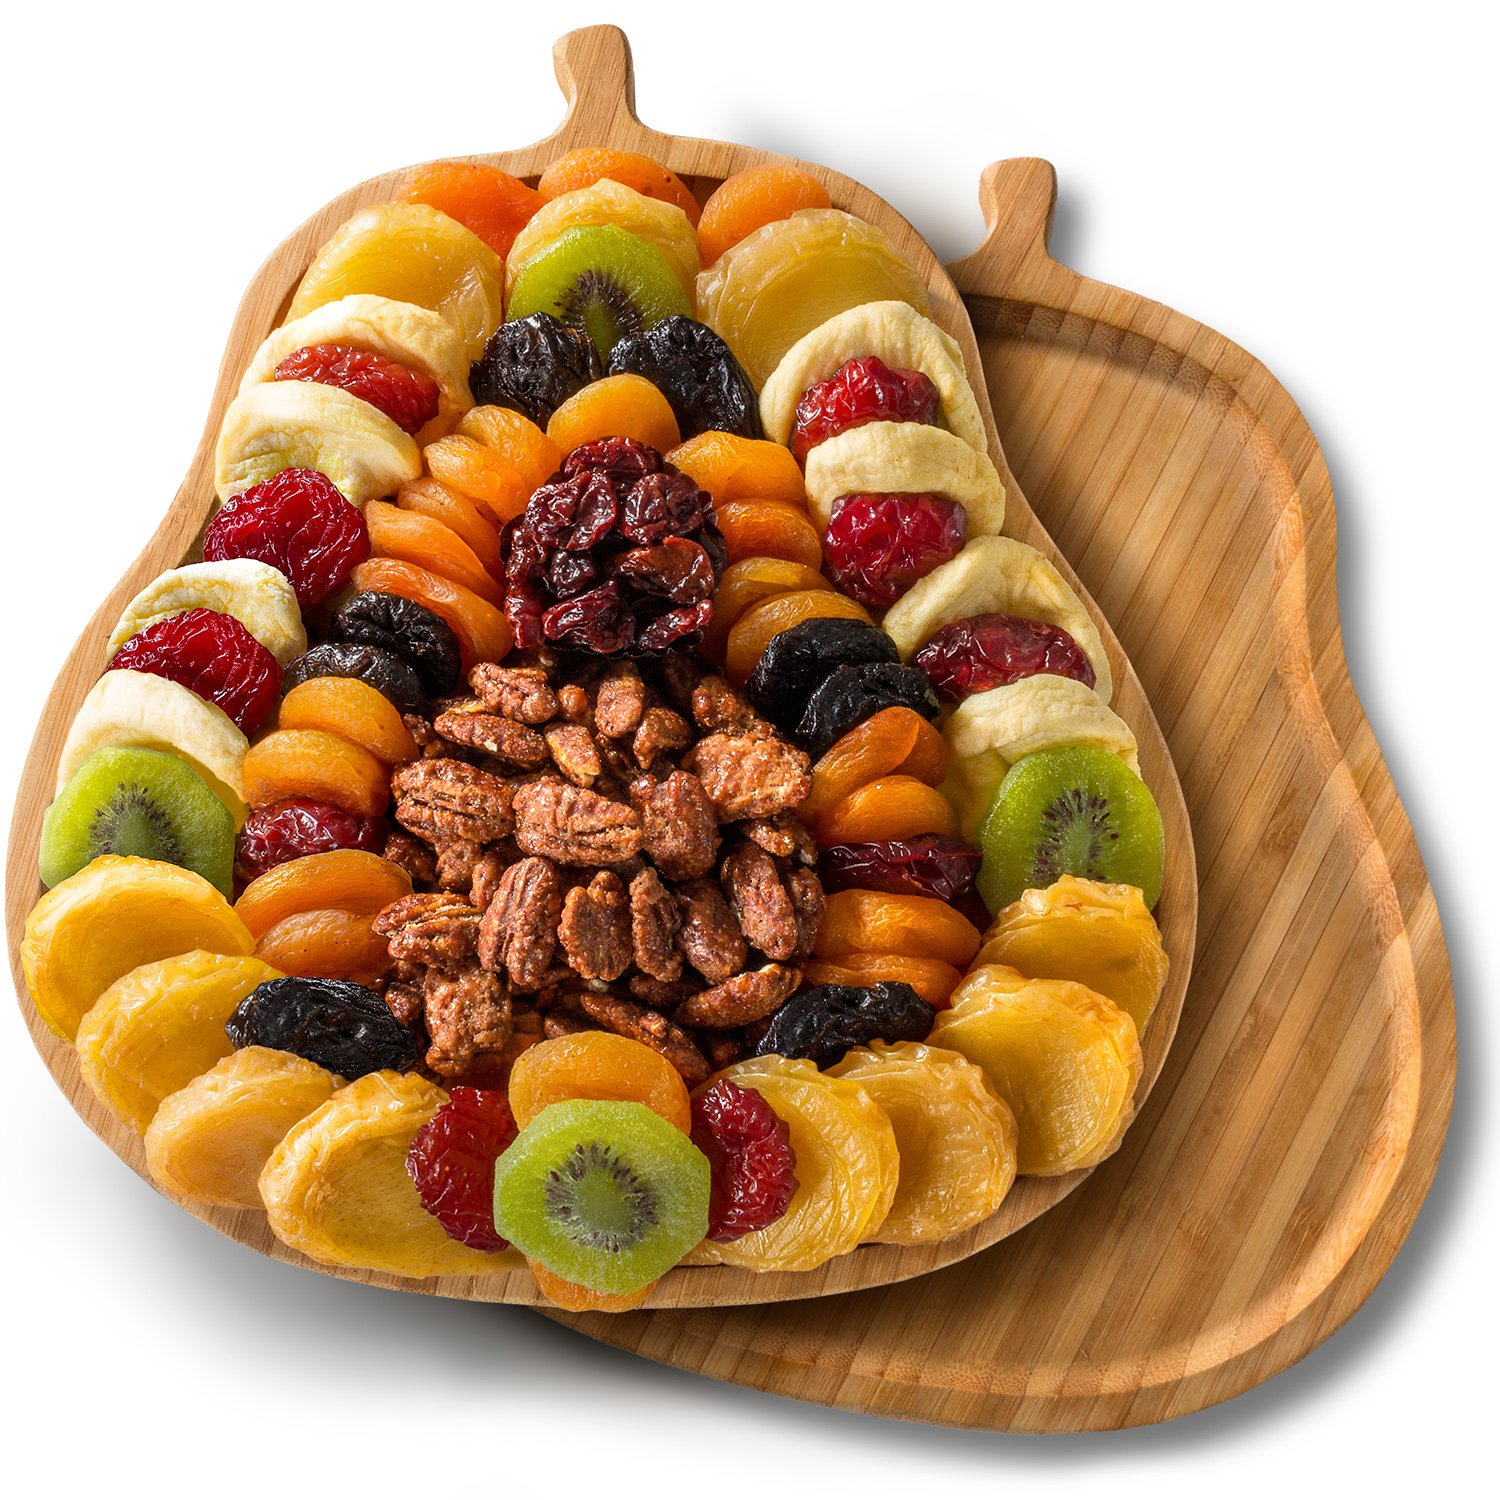 Golden State Fruit Dried Fruit and Nuts on Pear Shaped Serving Tray